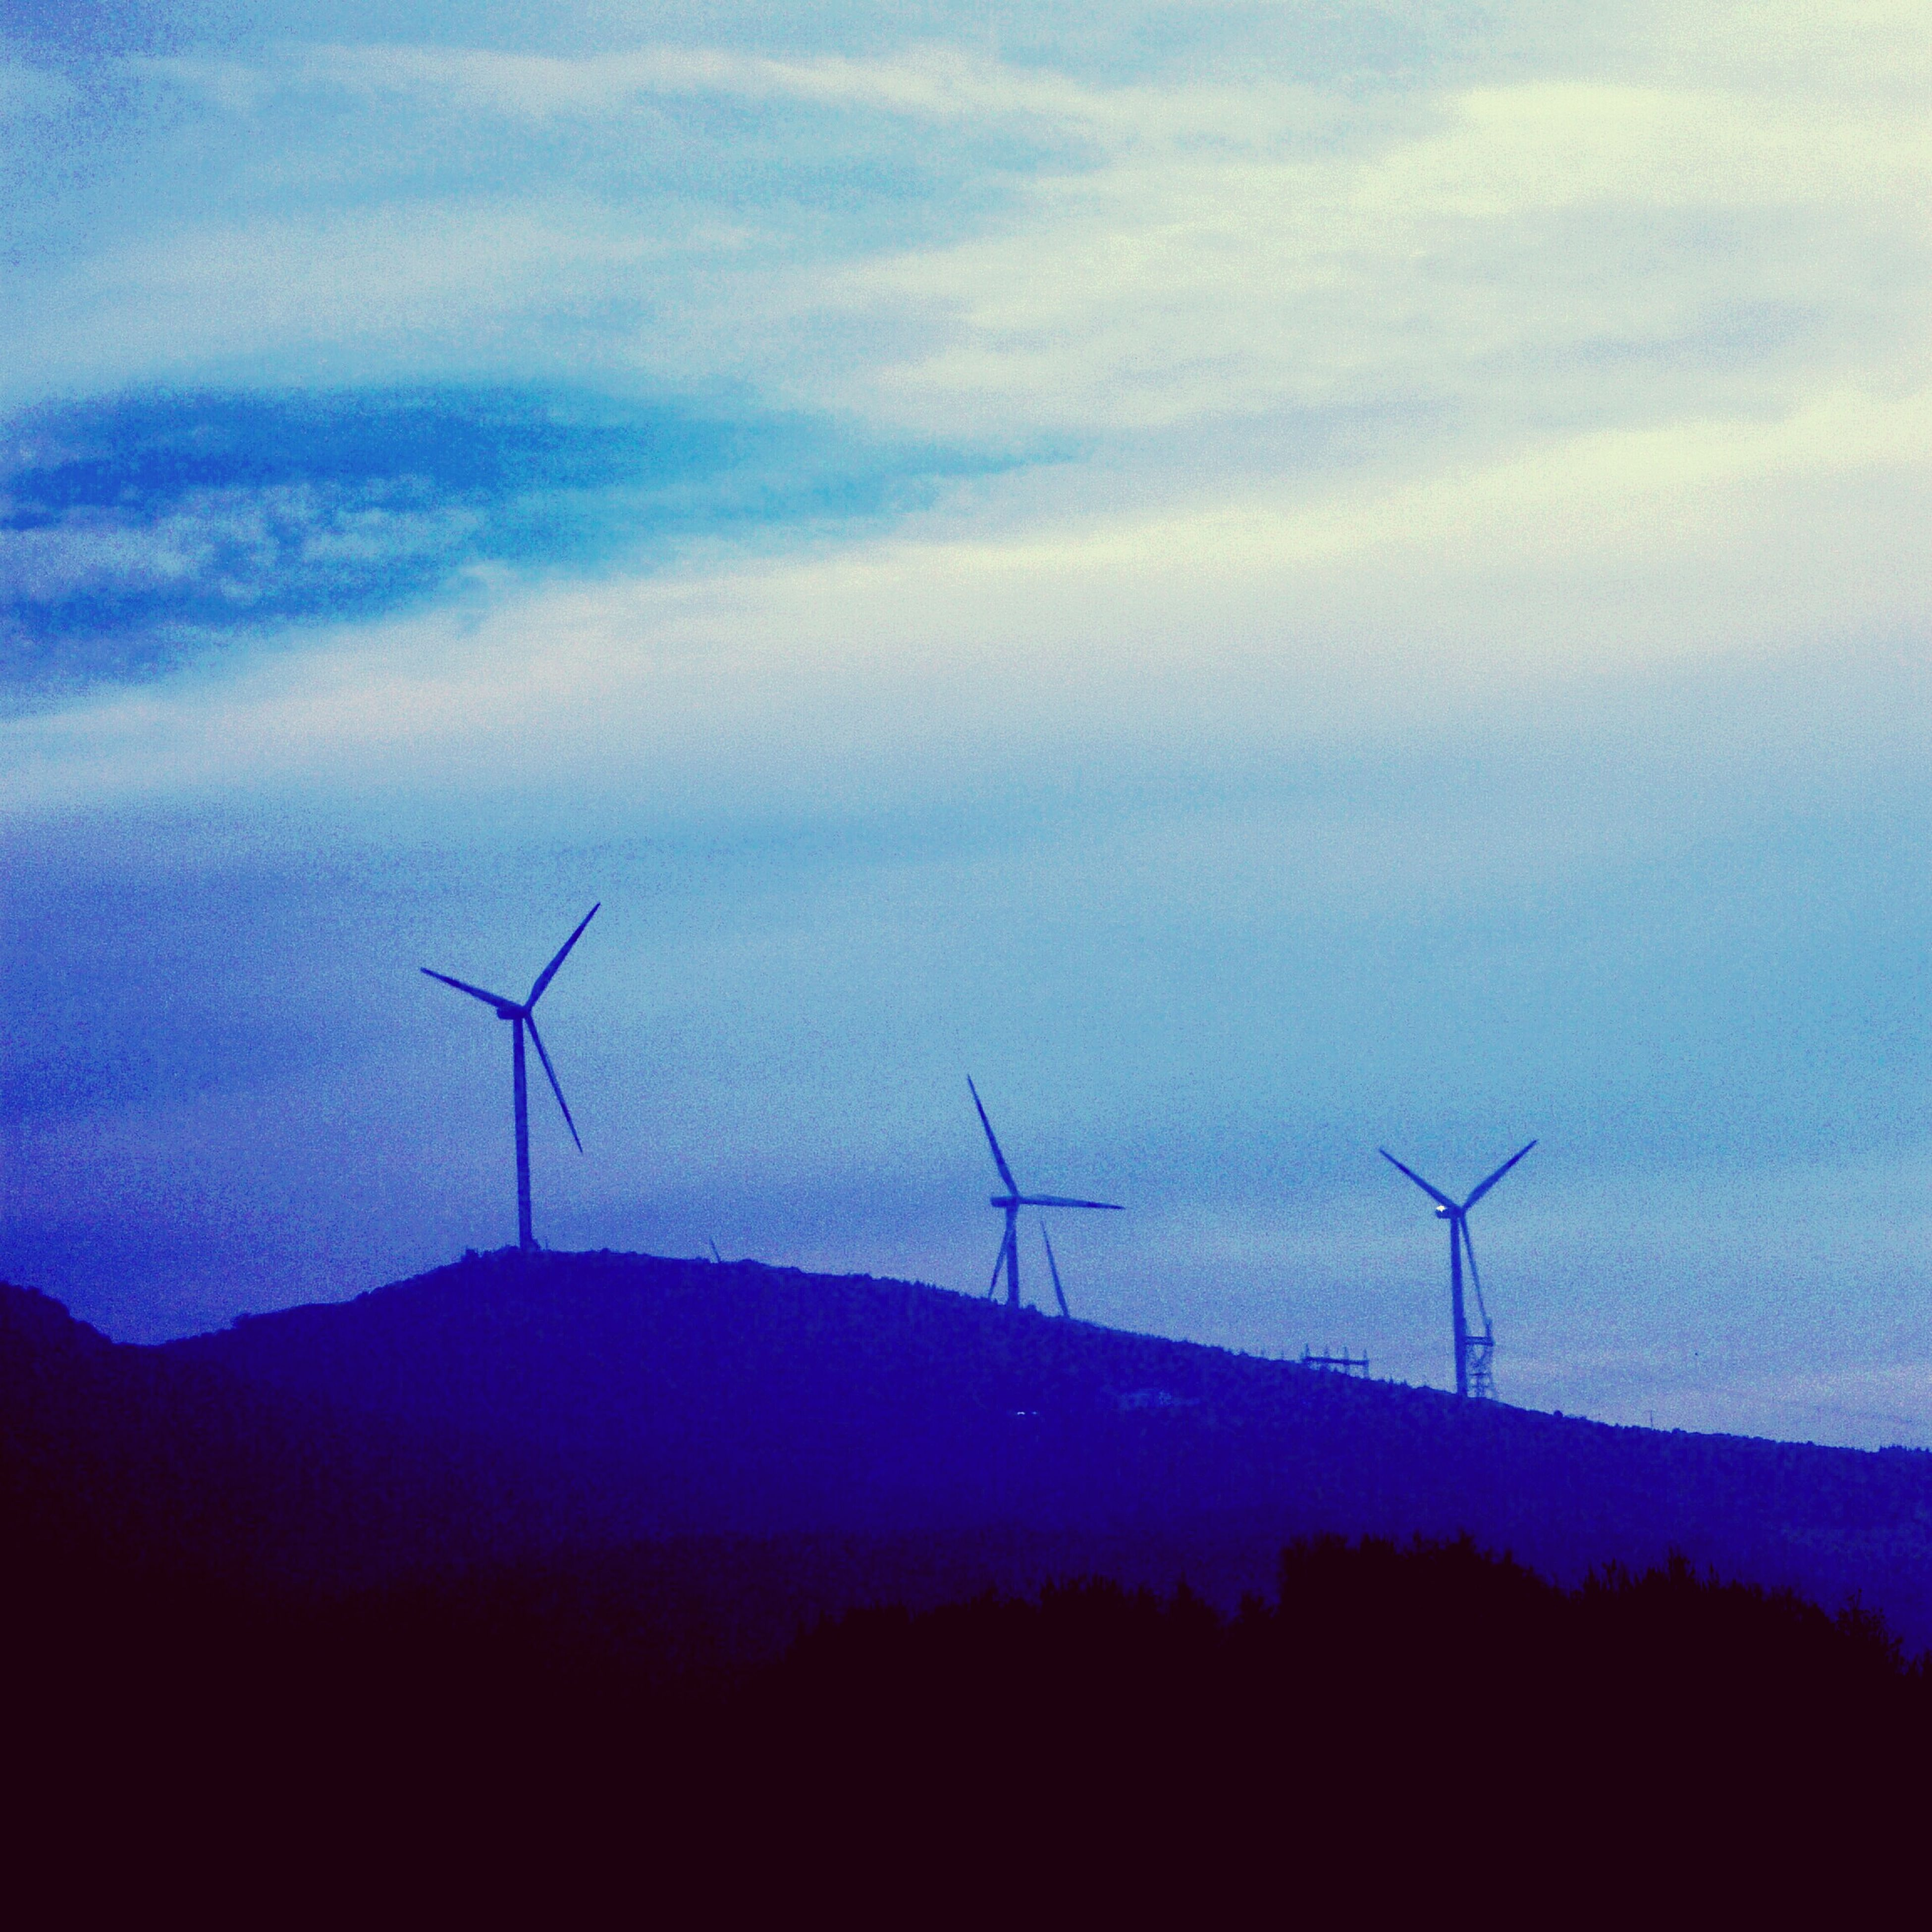 wind power, wind turbine, alternative energy, fuel and power generation, windmill, environmental conservation, renewable energy, landscape, technology, sky, field, traditional windmill, tranquil scene, tranquility, rural scene, scenics, nature, electricity pylon, sustainable resources, electricity